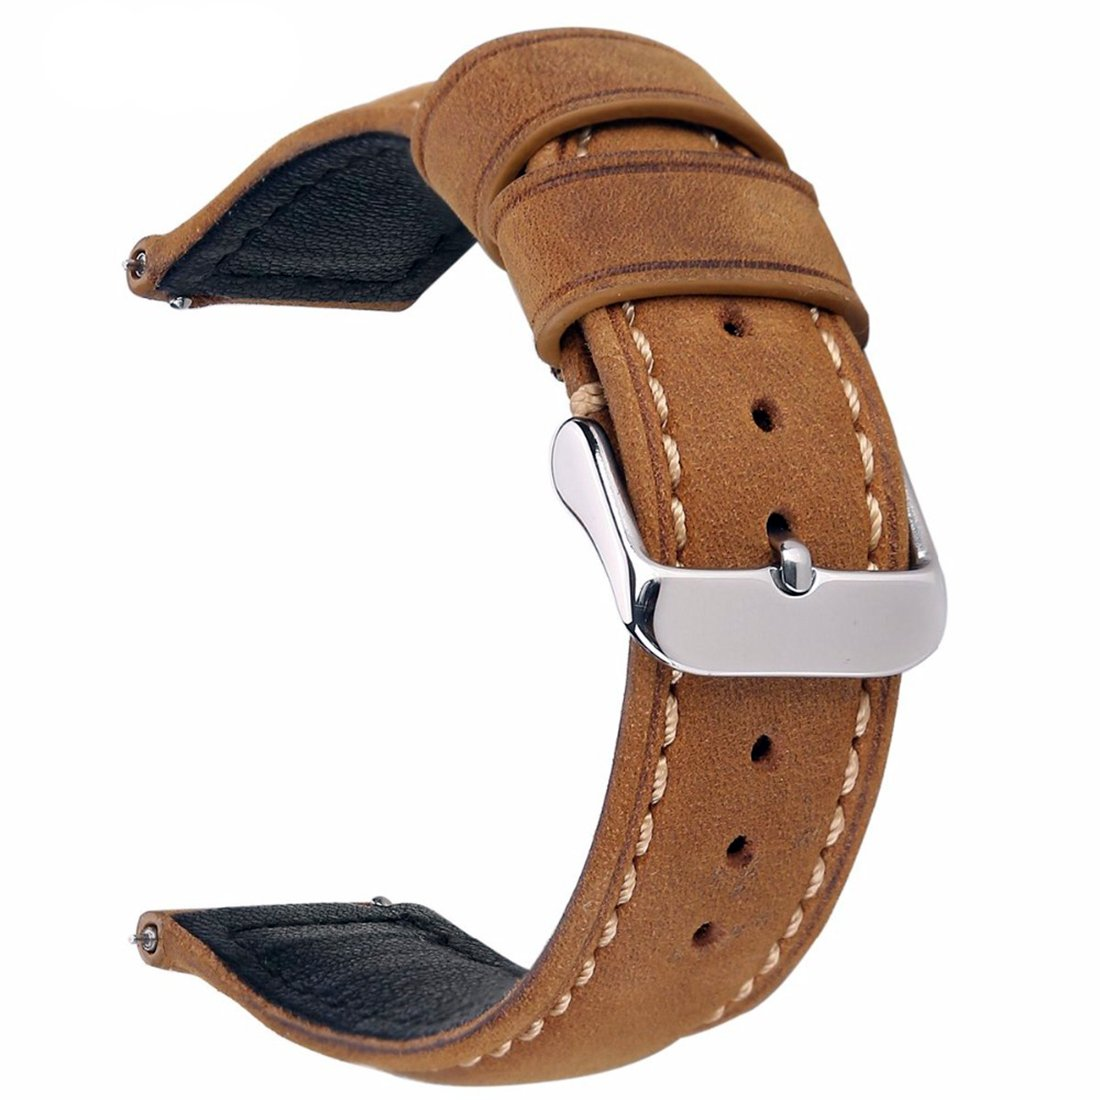 Izasky 20mm 22mm Replacement Watch Bands Genuine Leather Light Brown Dark Matte Retro Leather Watch Strap with Quick Release Spring Bar (Light Brown 20mm)